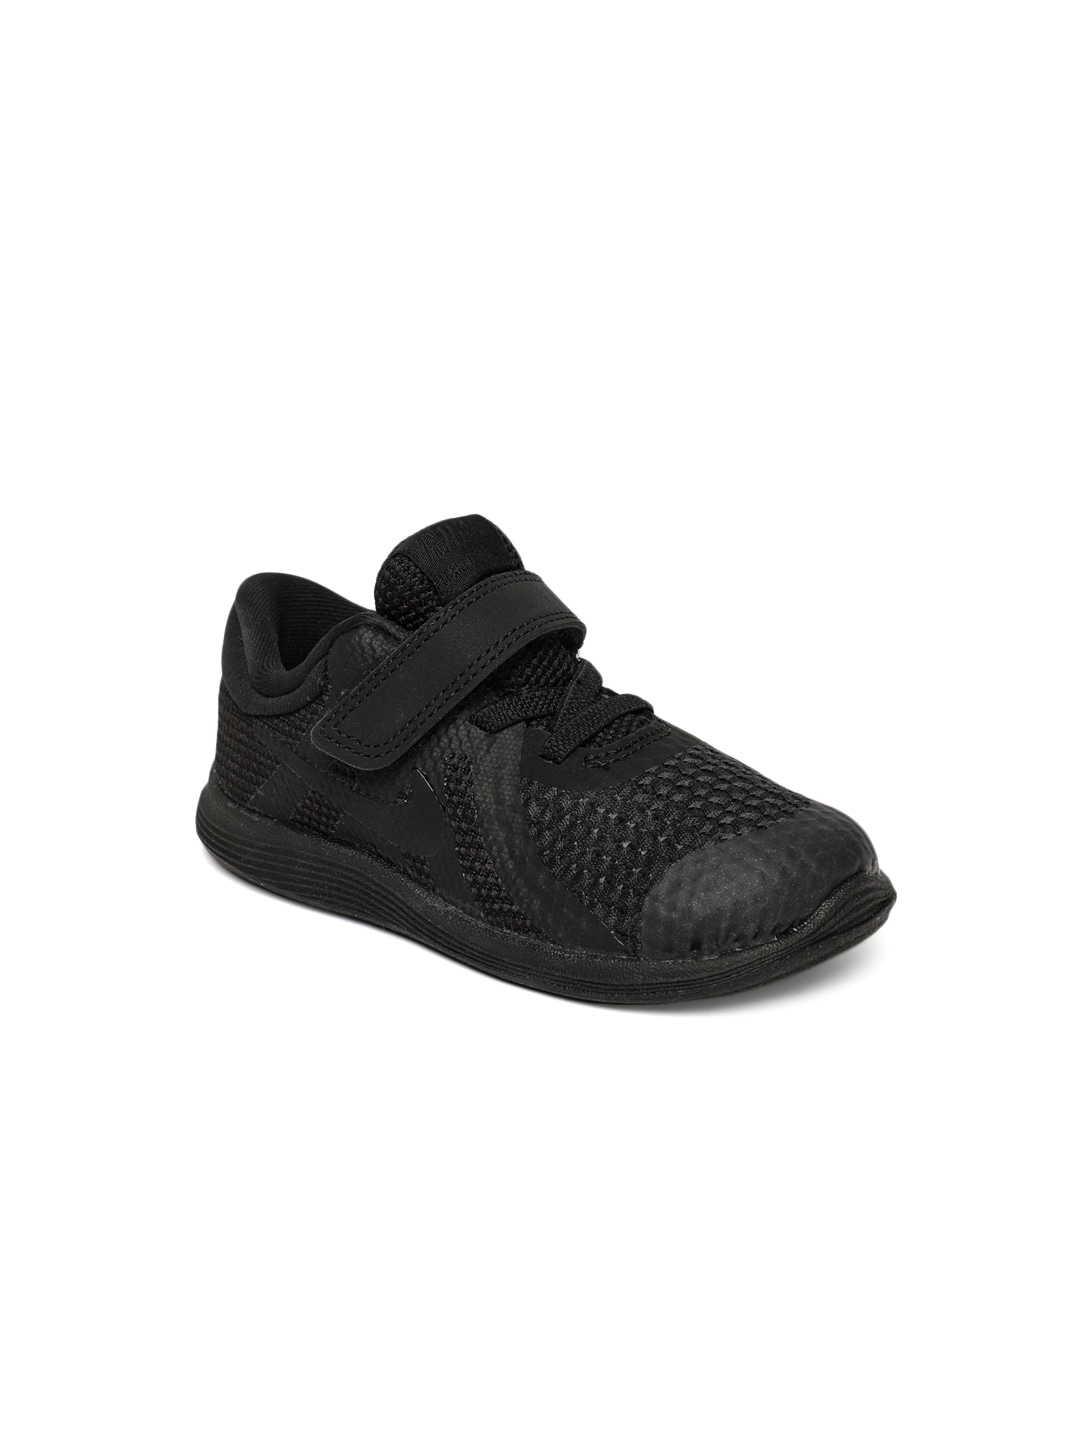 c8b9e1925e7d Boy s Nike Shoes - Buy Nike Shoes for Boys Online in India